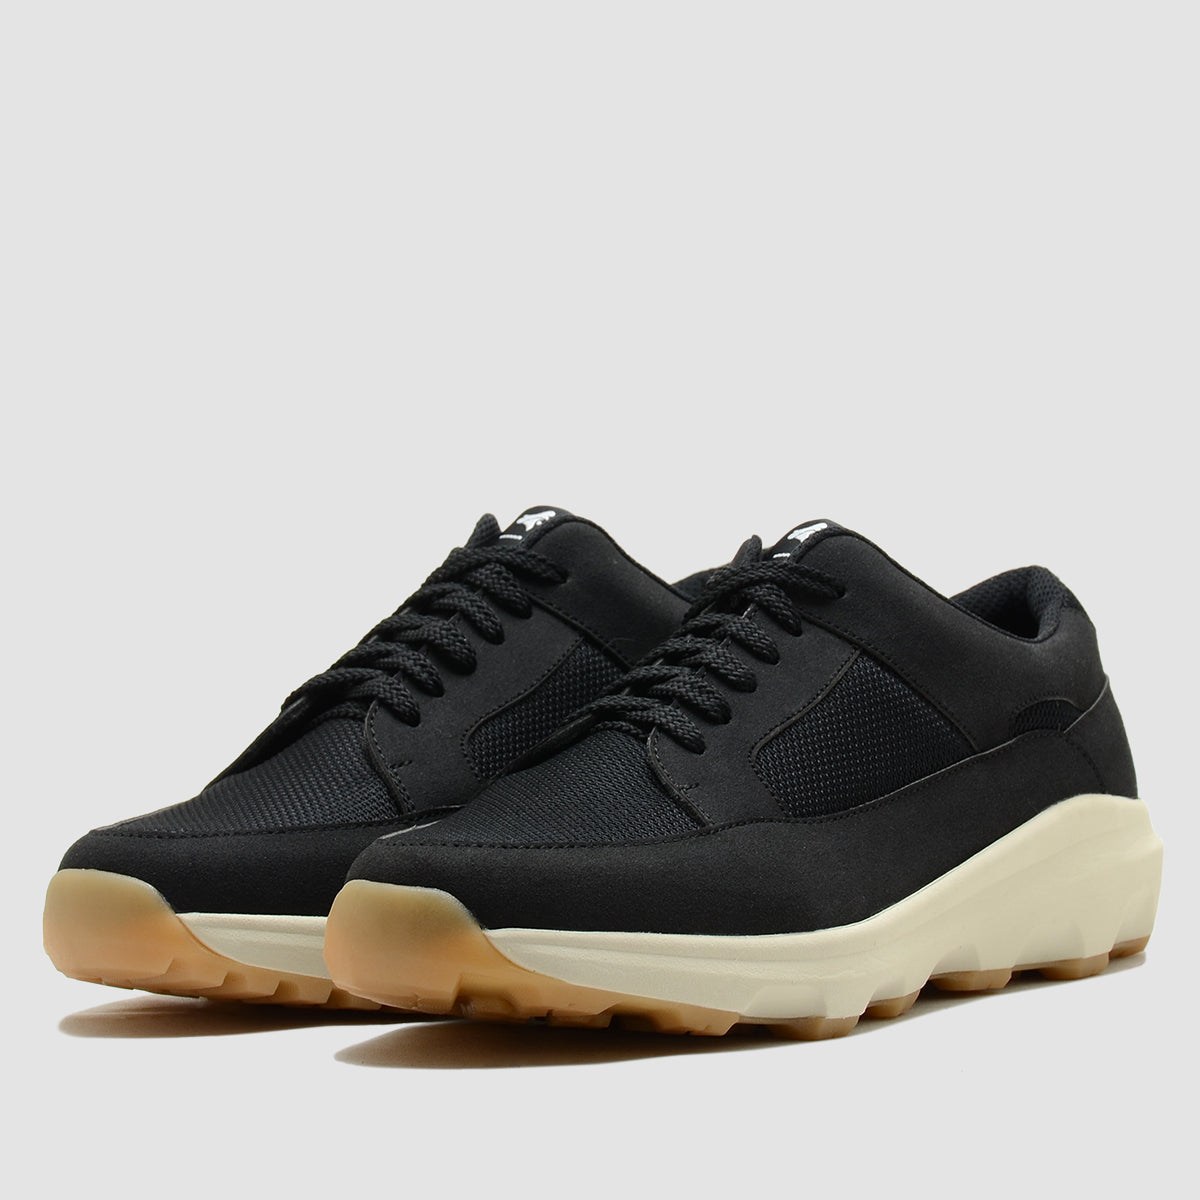 Sahara Black Gum Sole